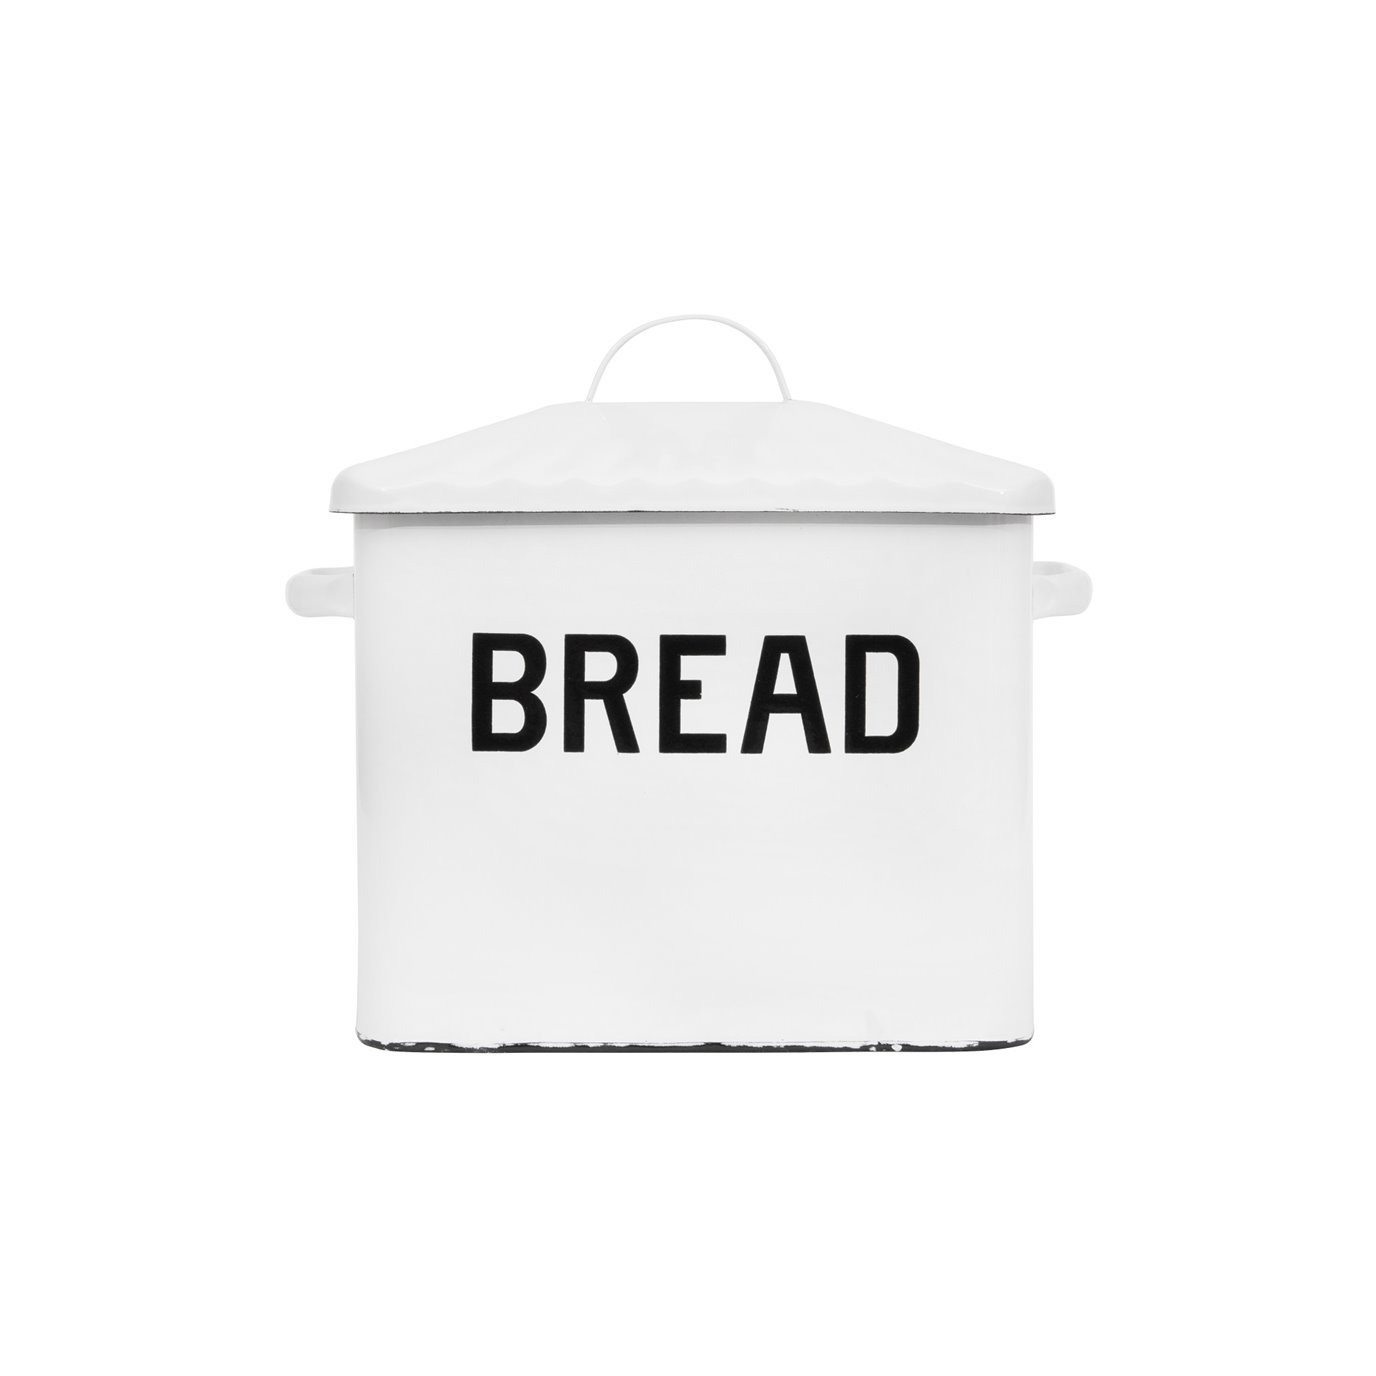 Enameled Metal Distressed White Bread Box with Lid